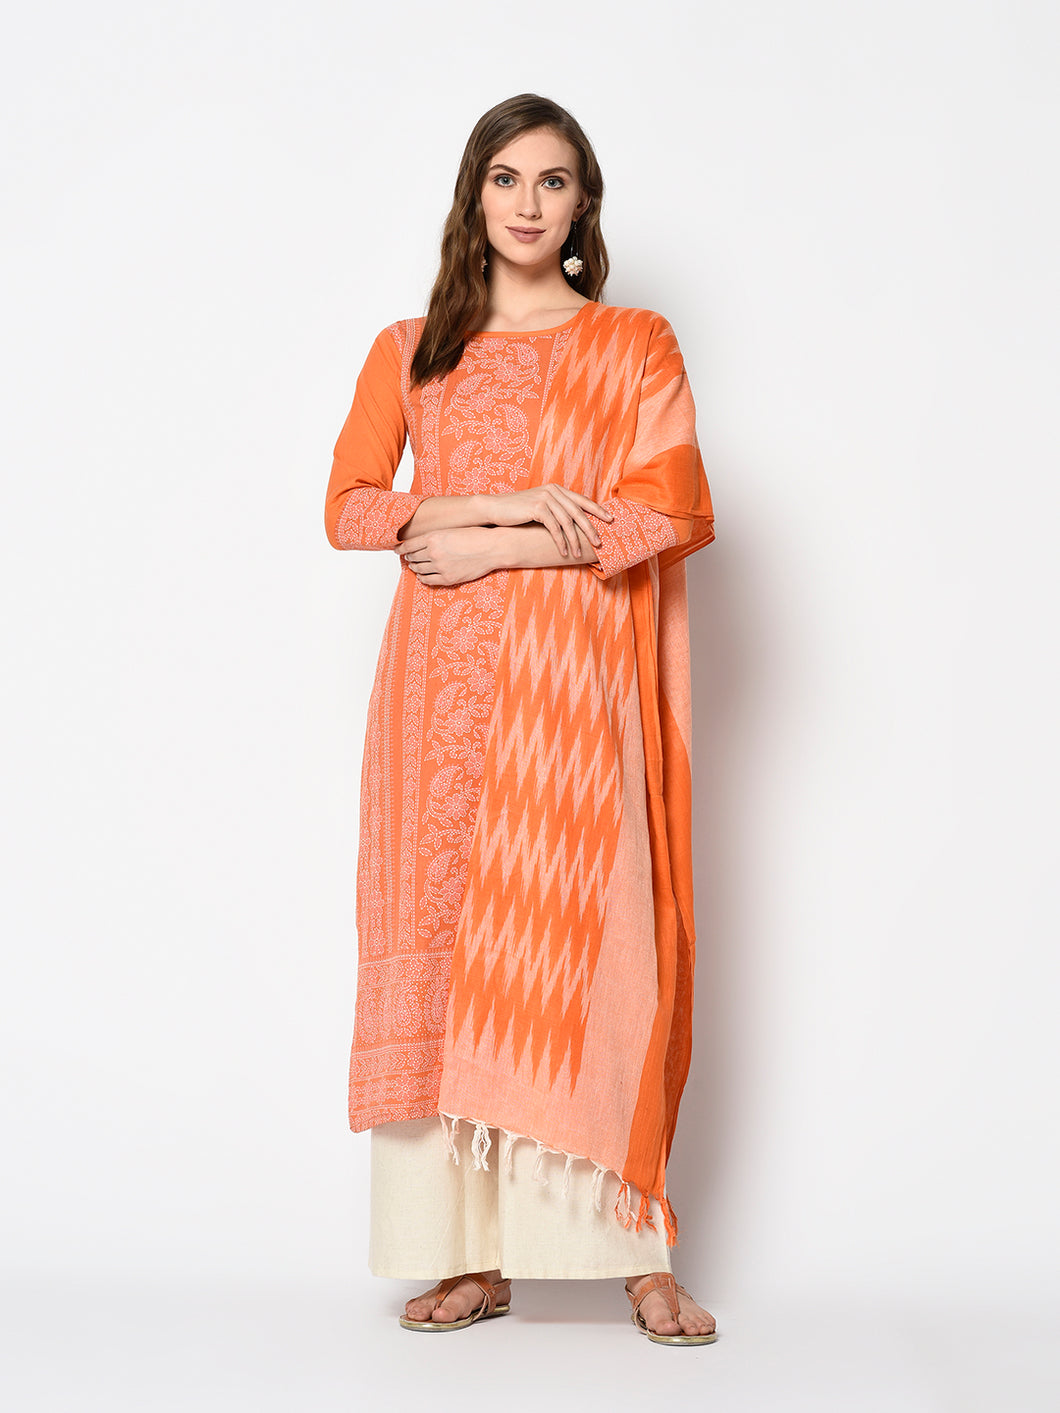 Bhelpuri Fanta Pure Cotton Woven Designer Party Wear Salwar Suit